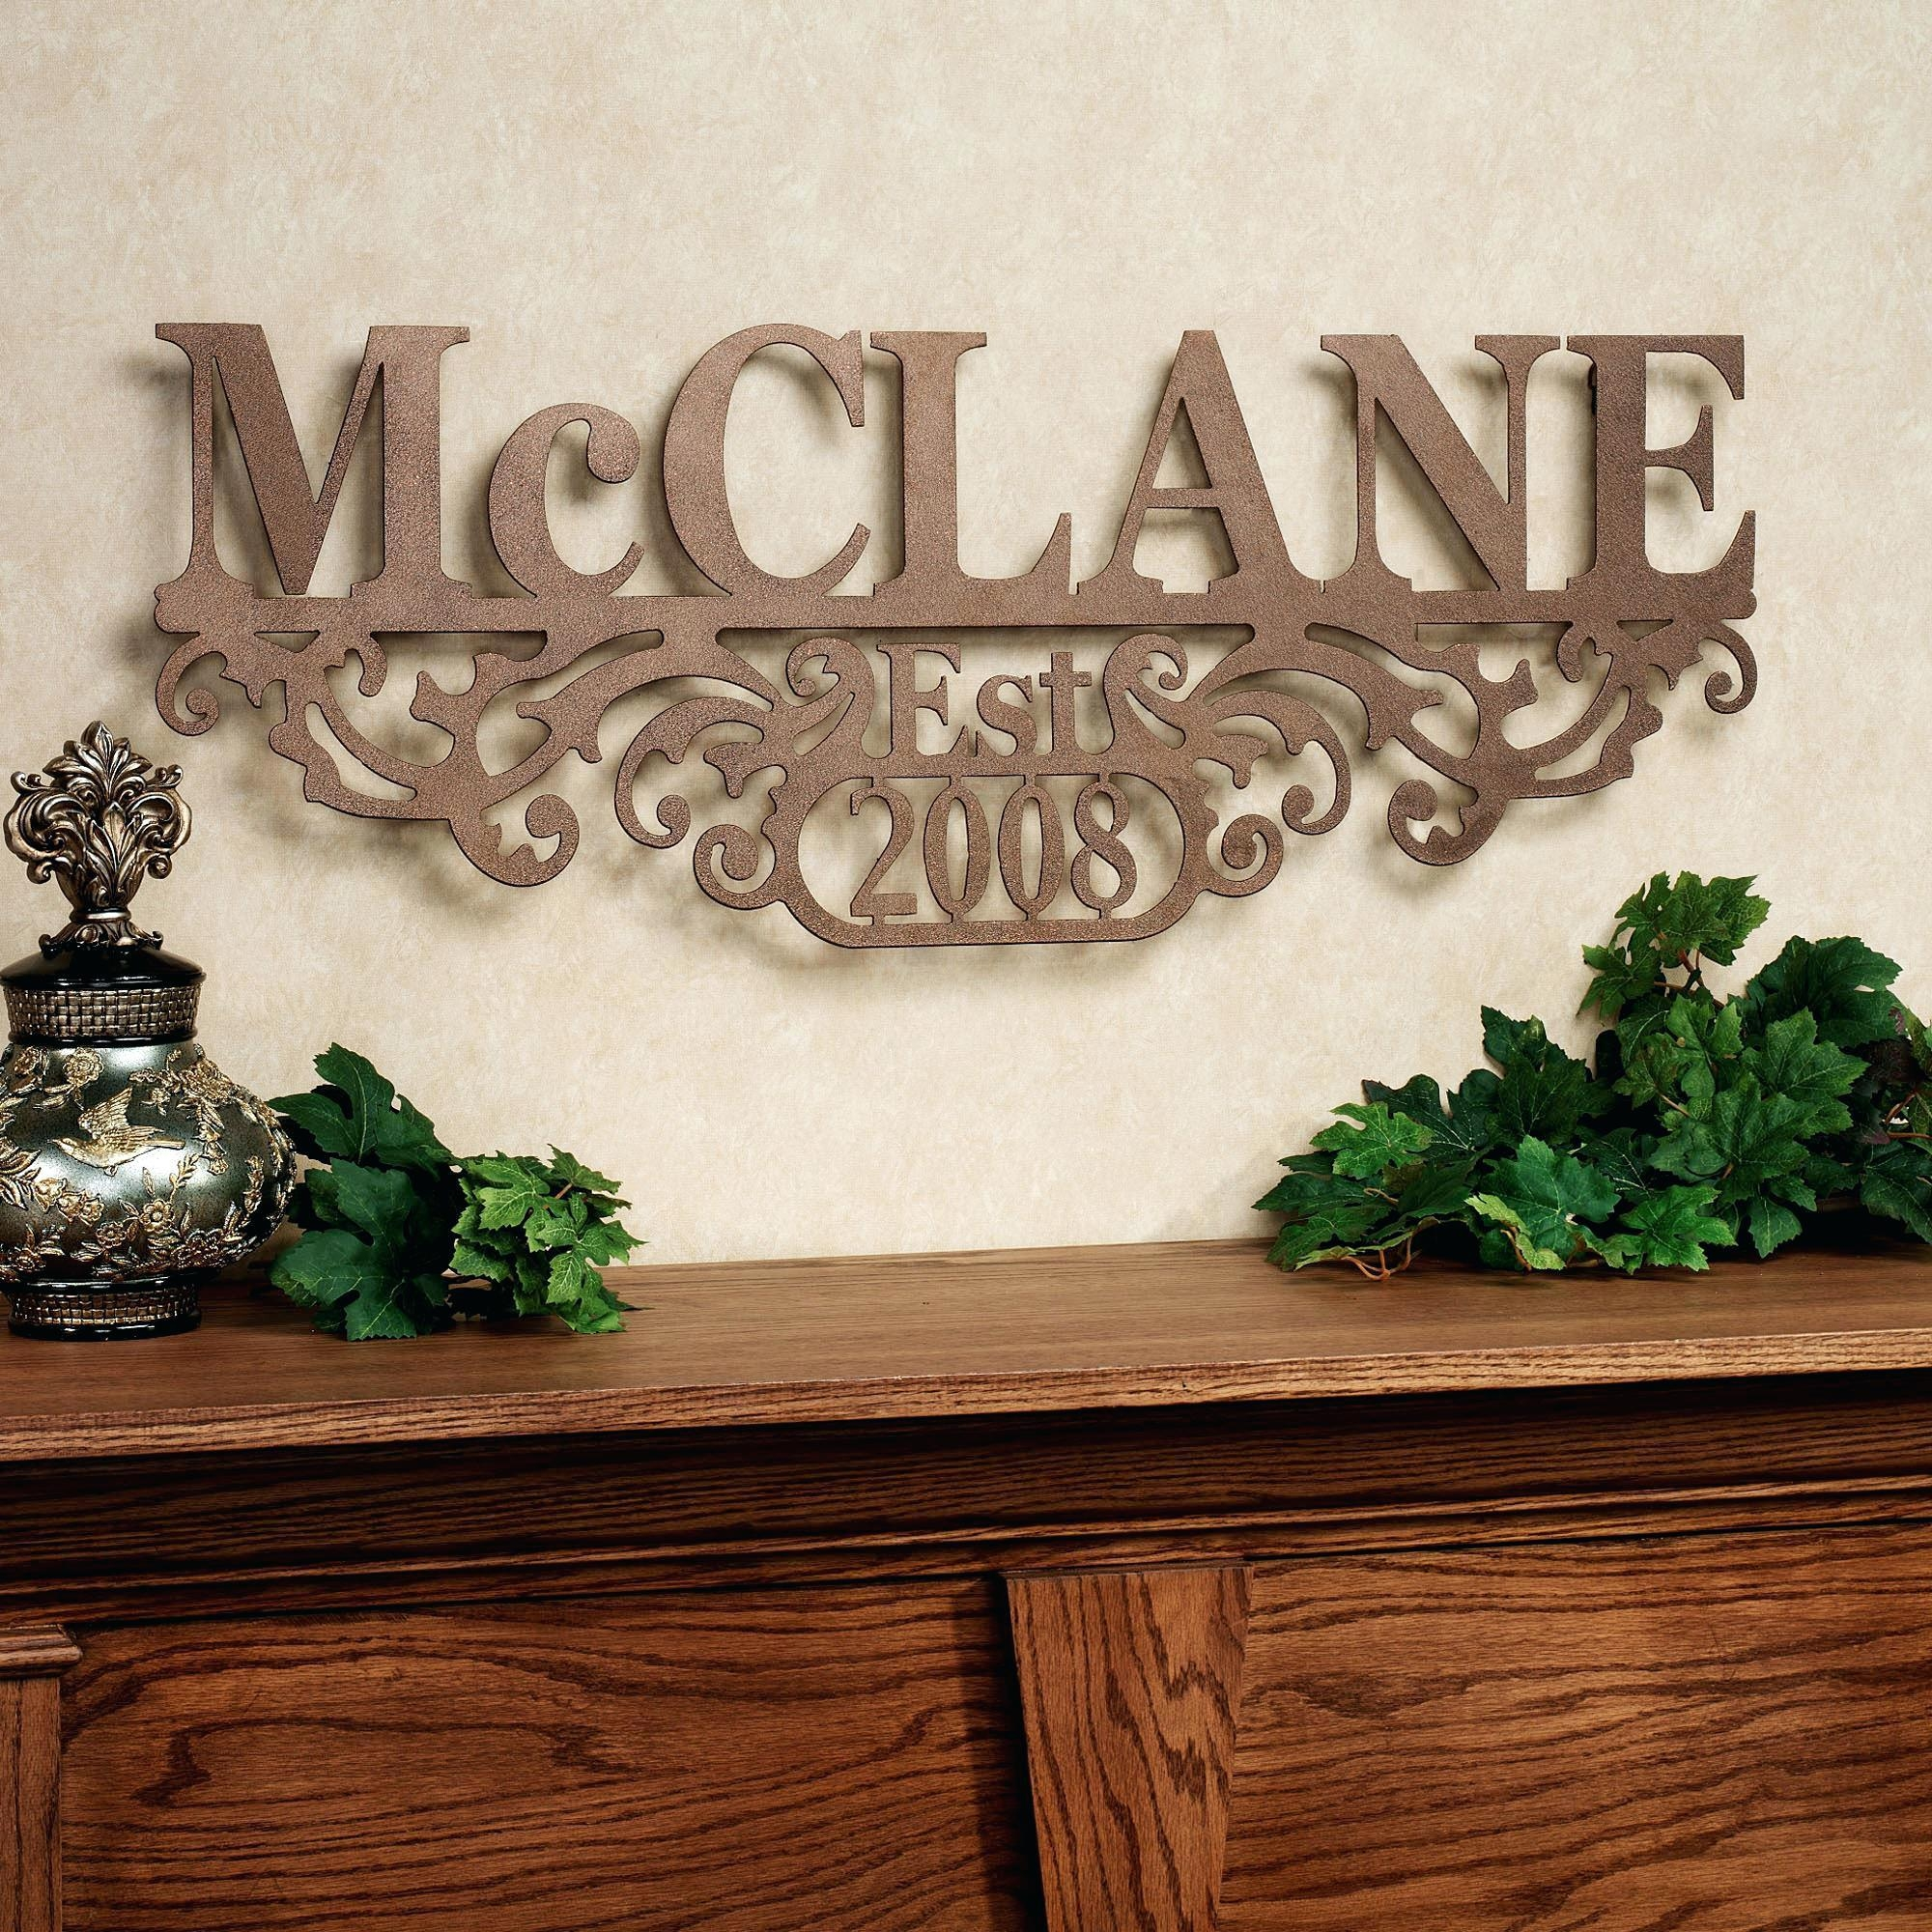 Wall Ideas : Last Name Metal Wall Art Family Metal Wall Art Uk For Faith Family Friends Wall Art (Photo 4 of 20)